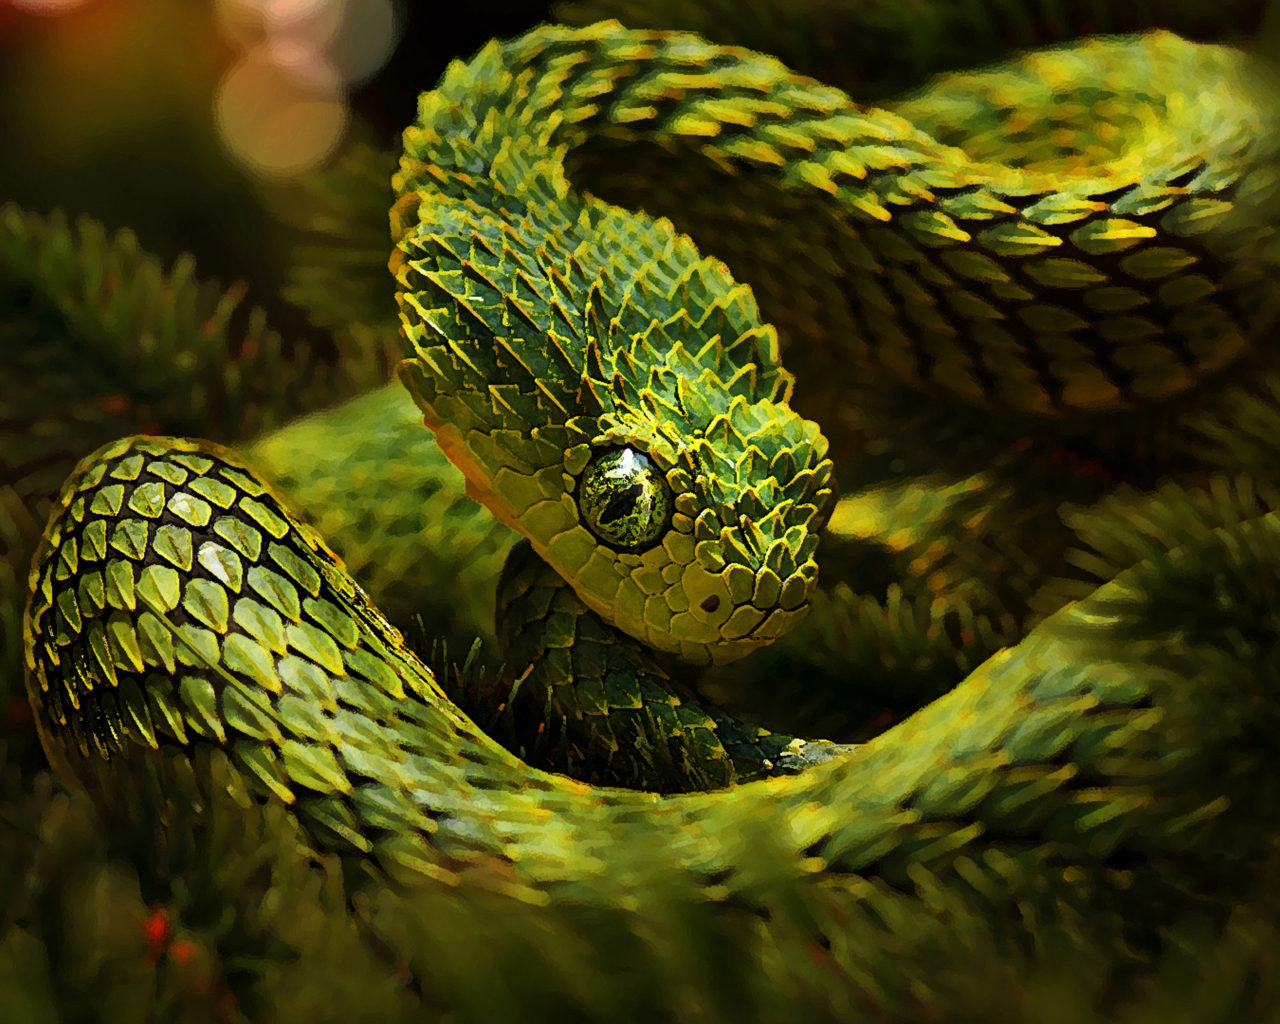 Black Camouflage Wallpaper Green Unusual Snakes Cactus Camouflage Hd Wallpaper